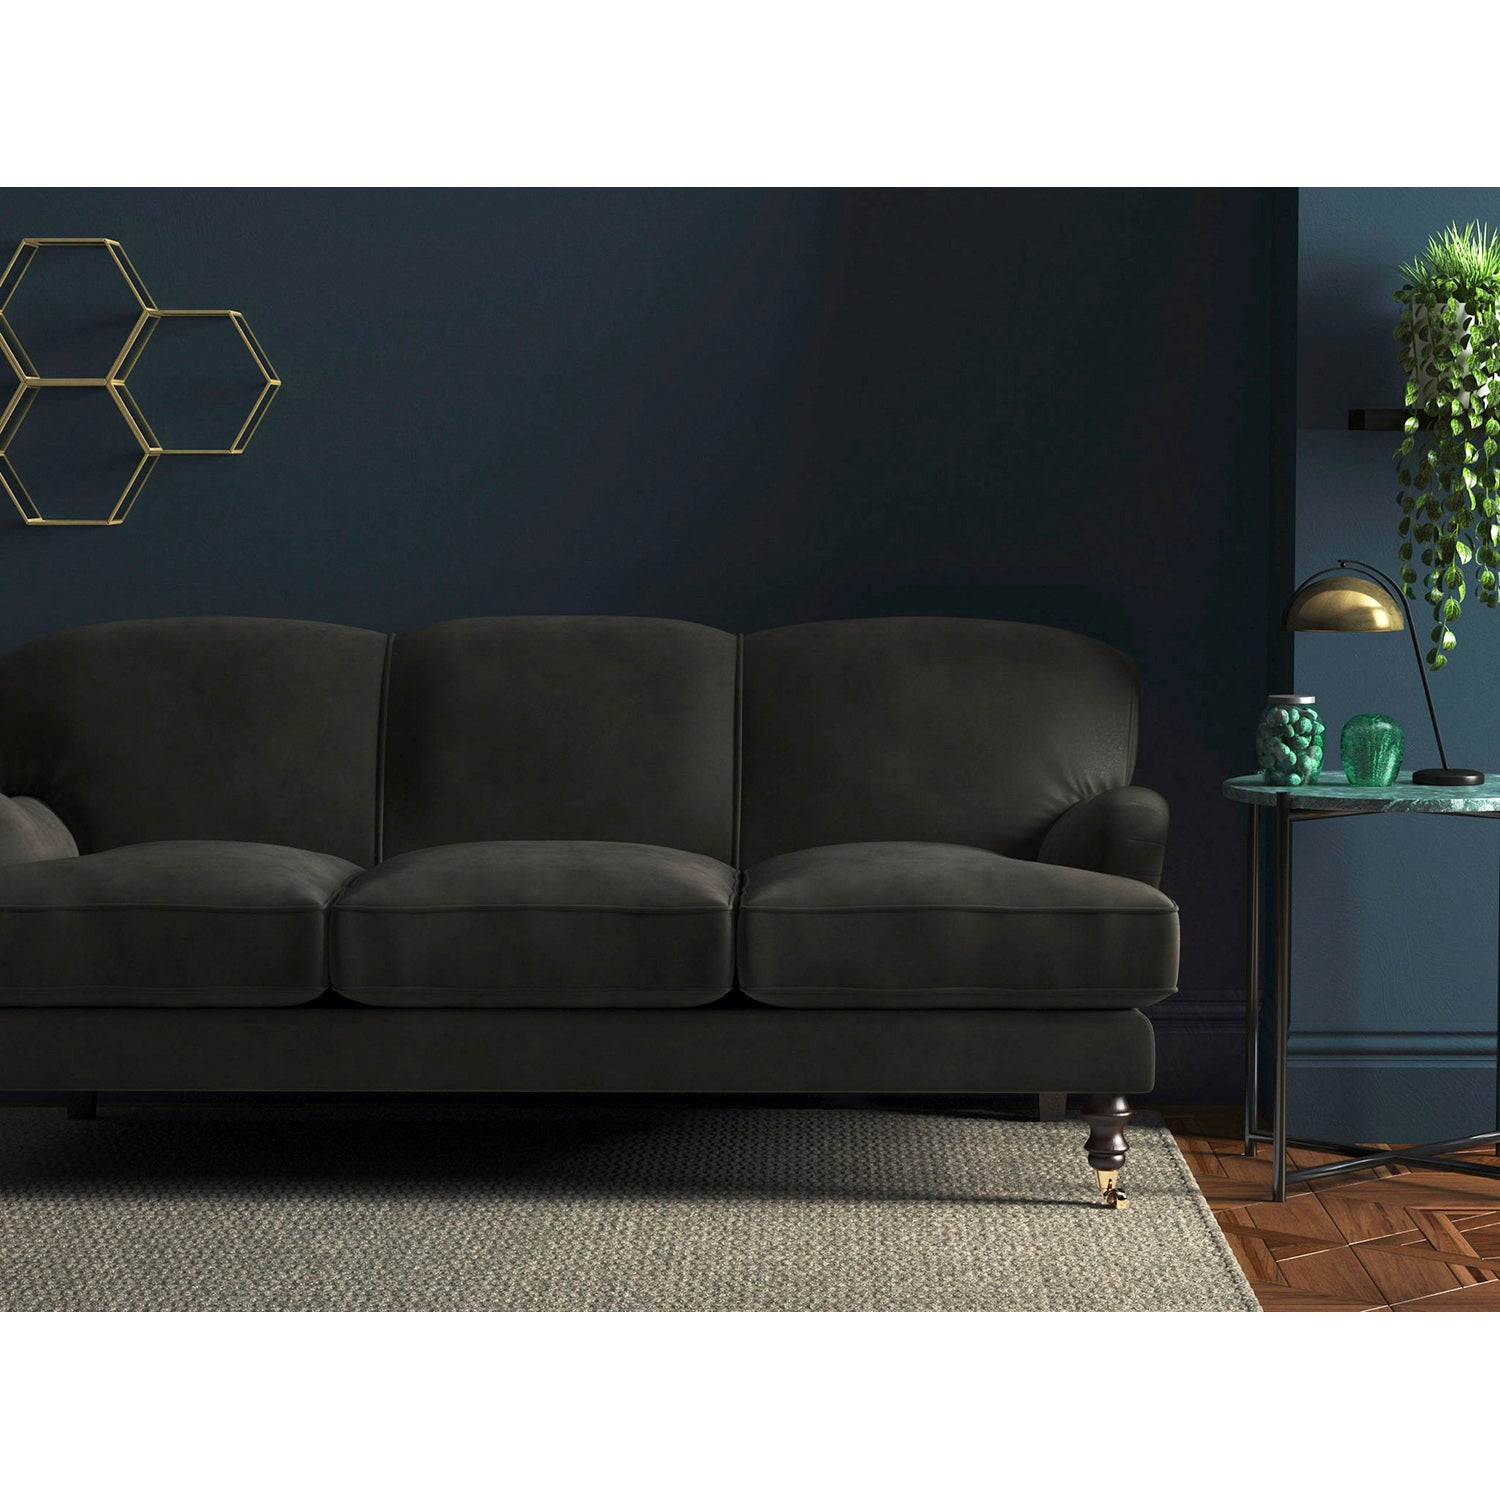 Sofa in a luxury dark mink coloured velvet upholstery fabric with a stain resistant finish